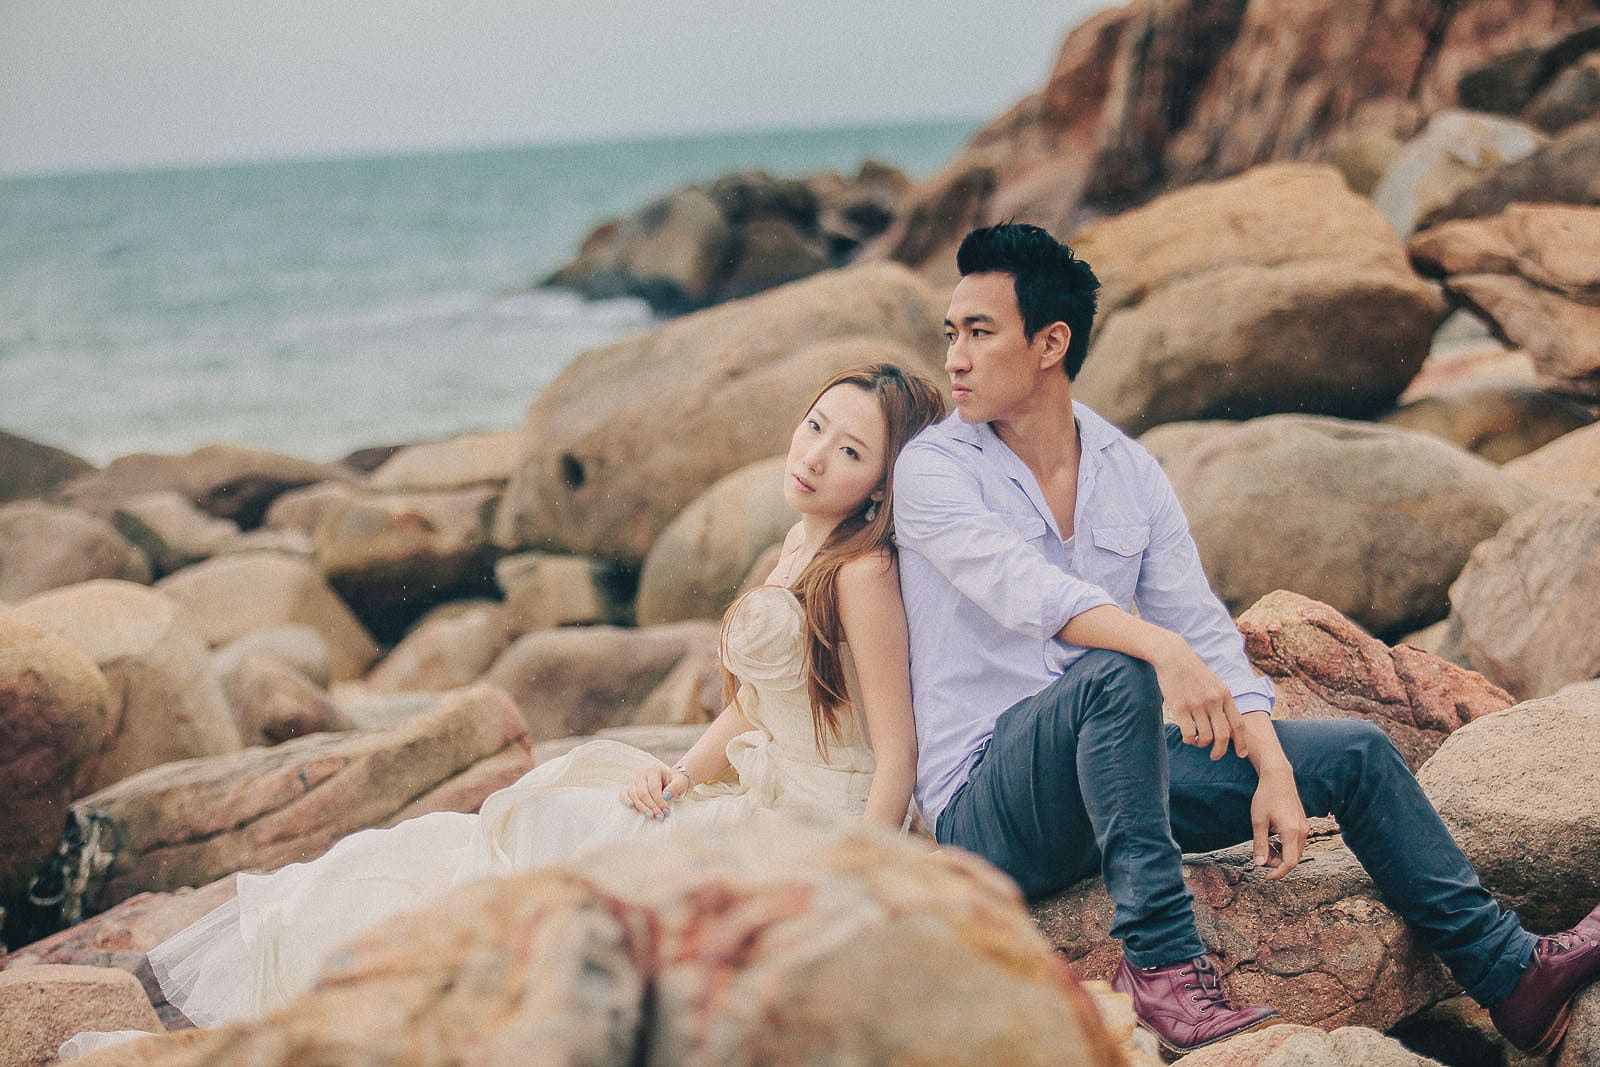 Hong Kong Pre Wedding photography / Joanne & Sam pre wedding photos